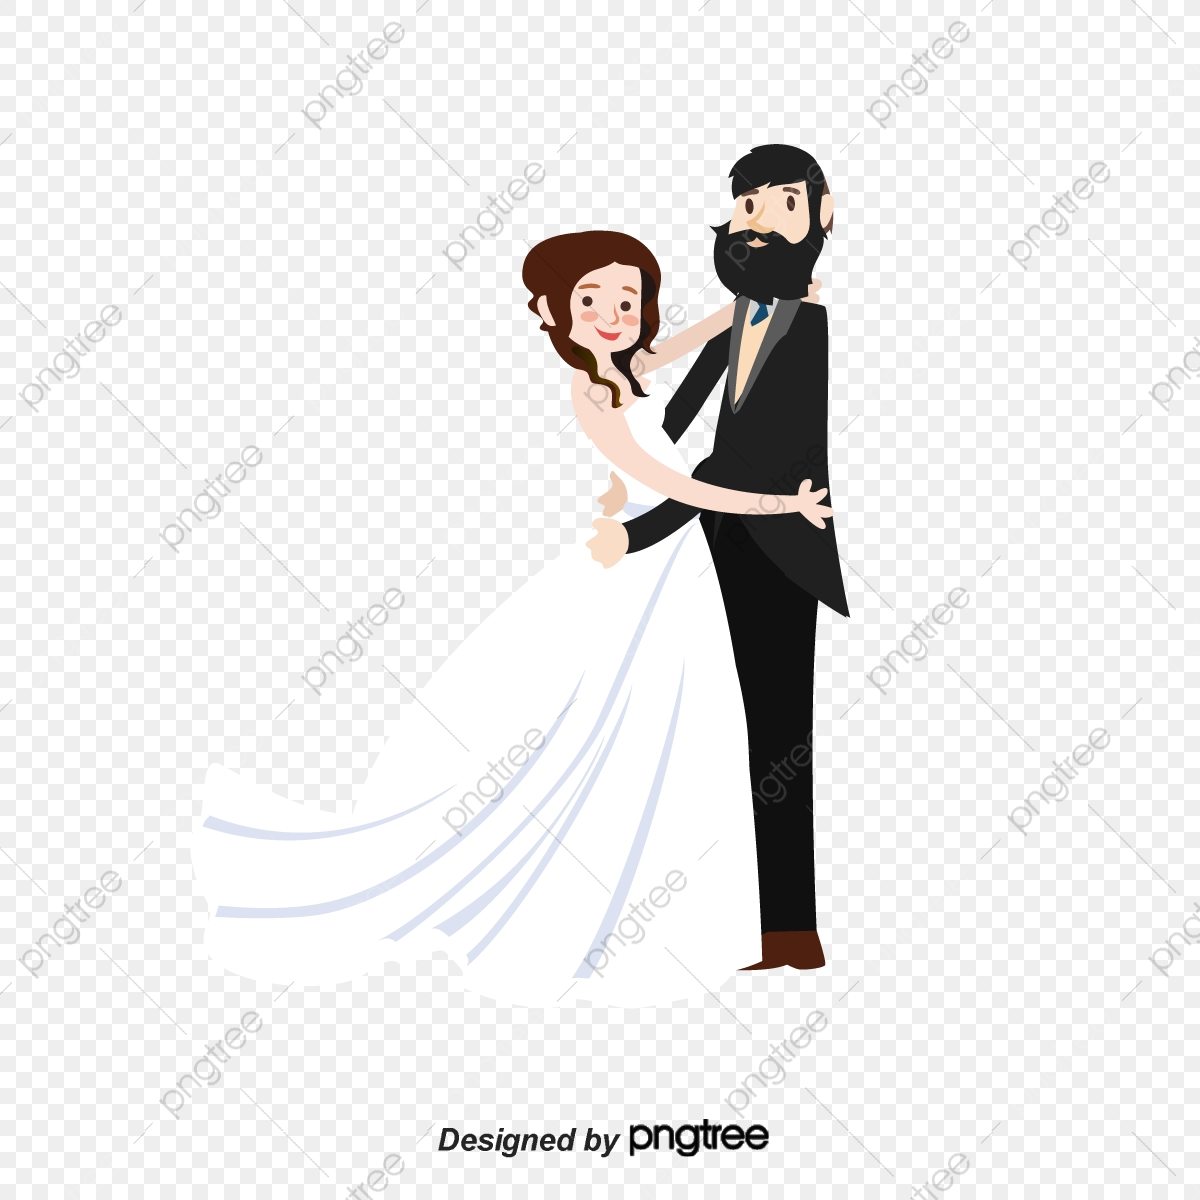 hight resolution of commercial use resource upgrade to premium plan and get license authorization upgradenow vector bride and groom